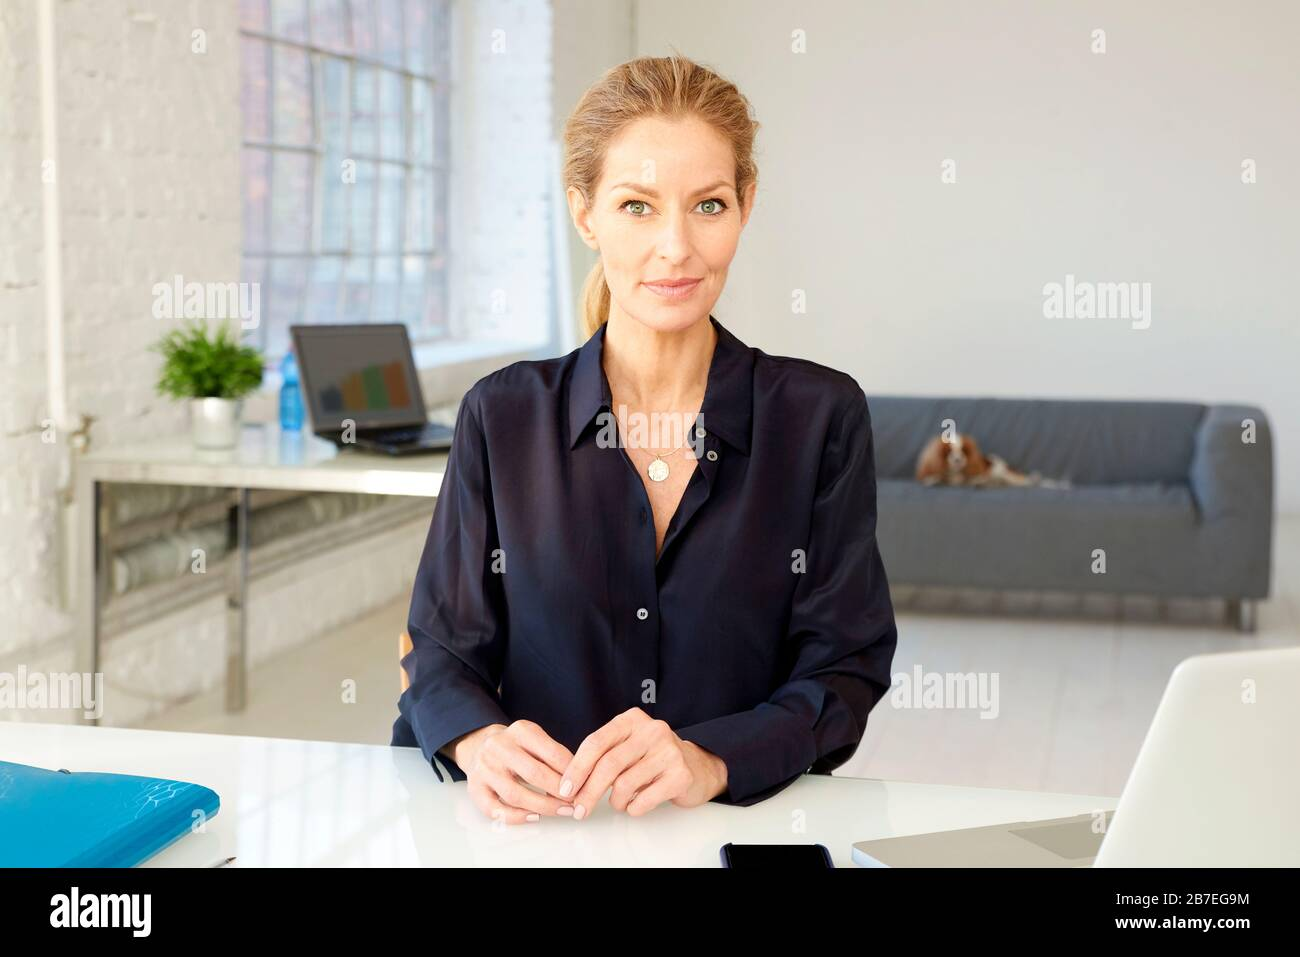 Portrait shot attractive middle aged businesswoman looking at camera and smiling while sitting at office desk. Stock Photo